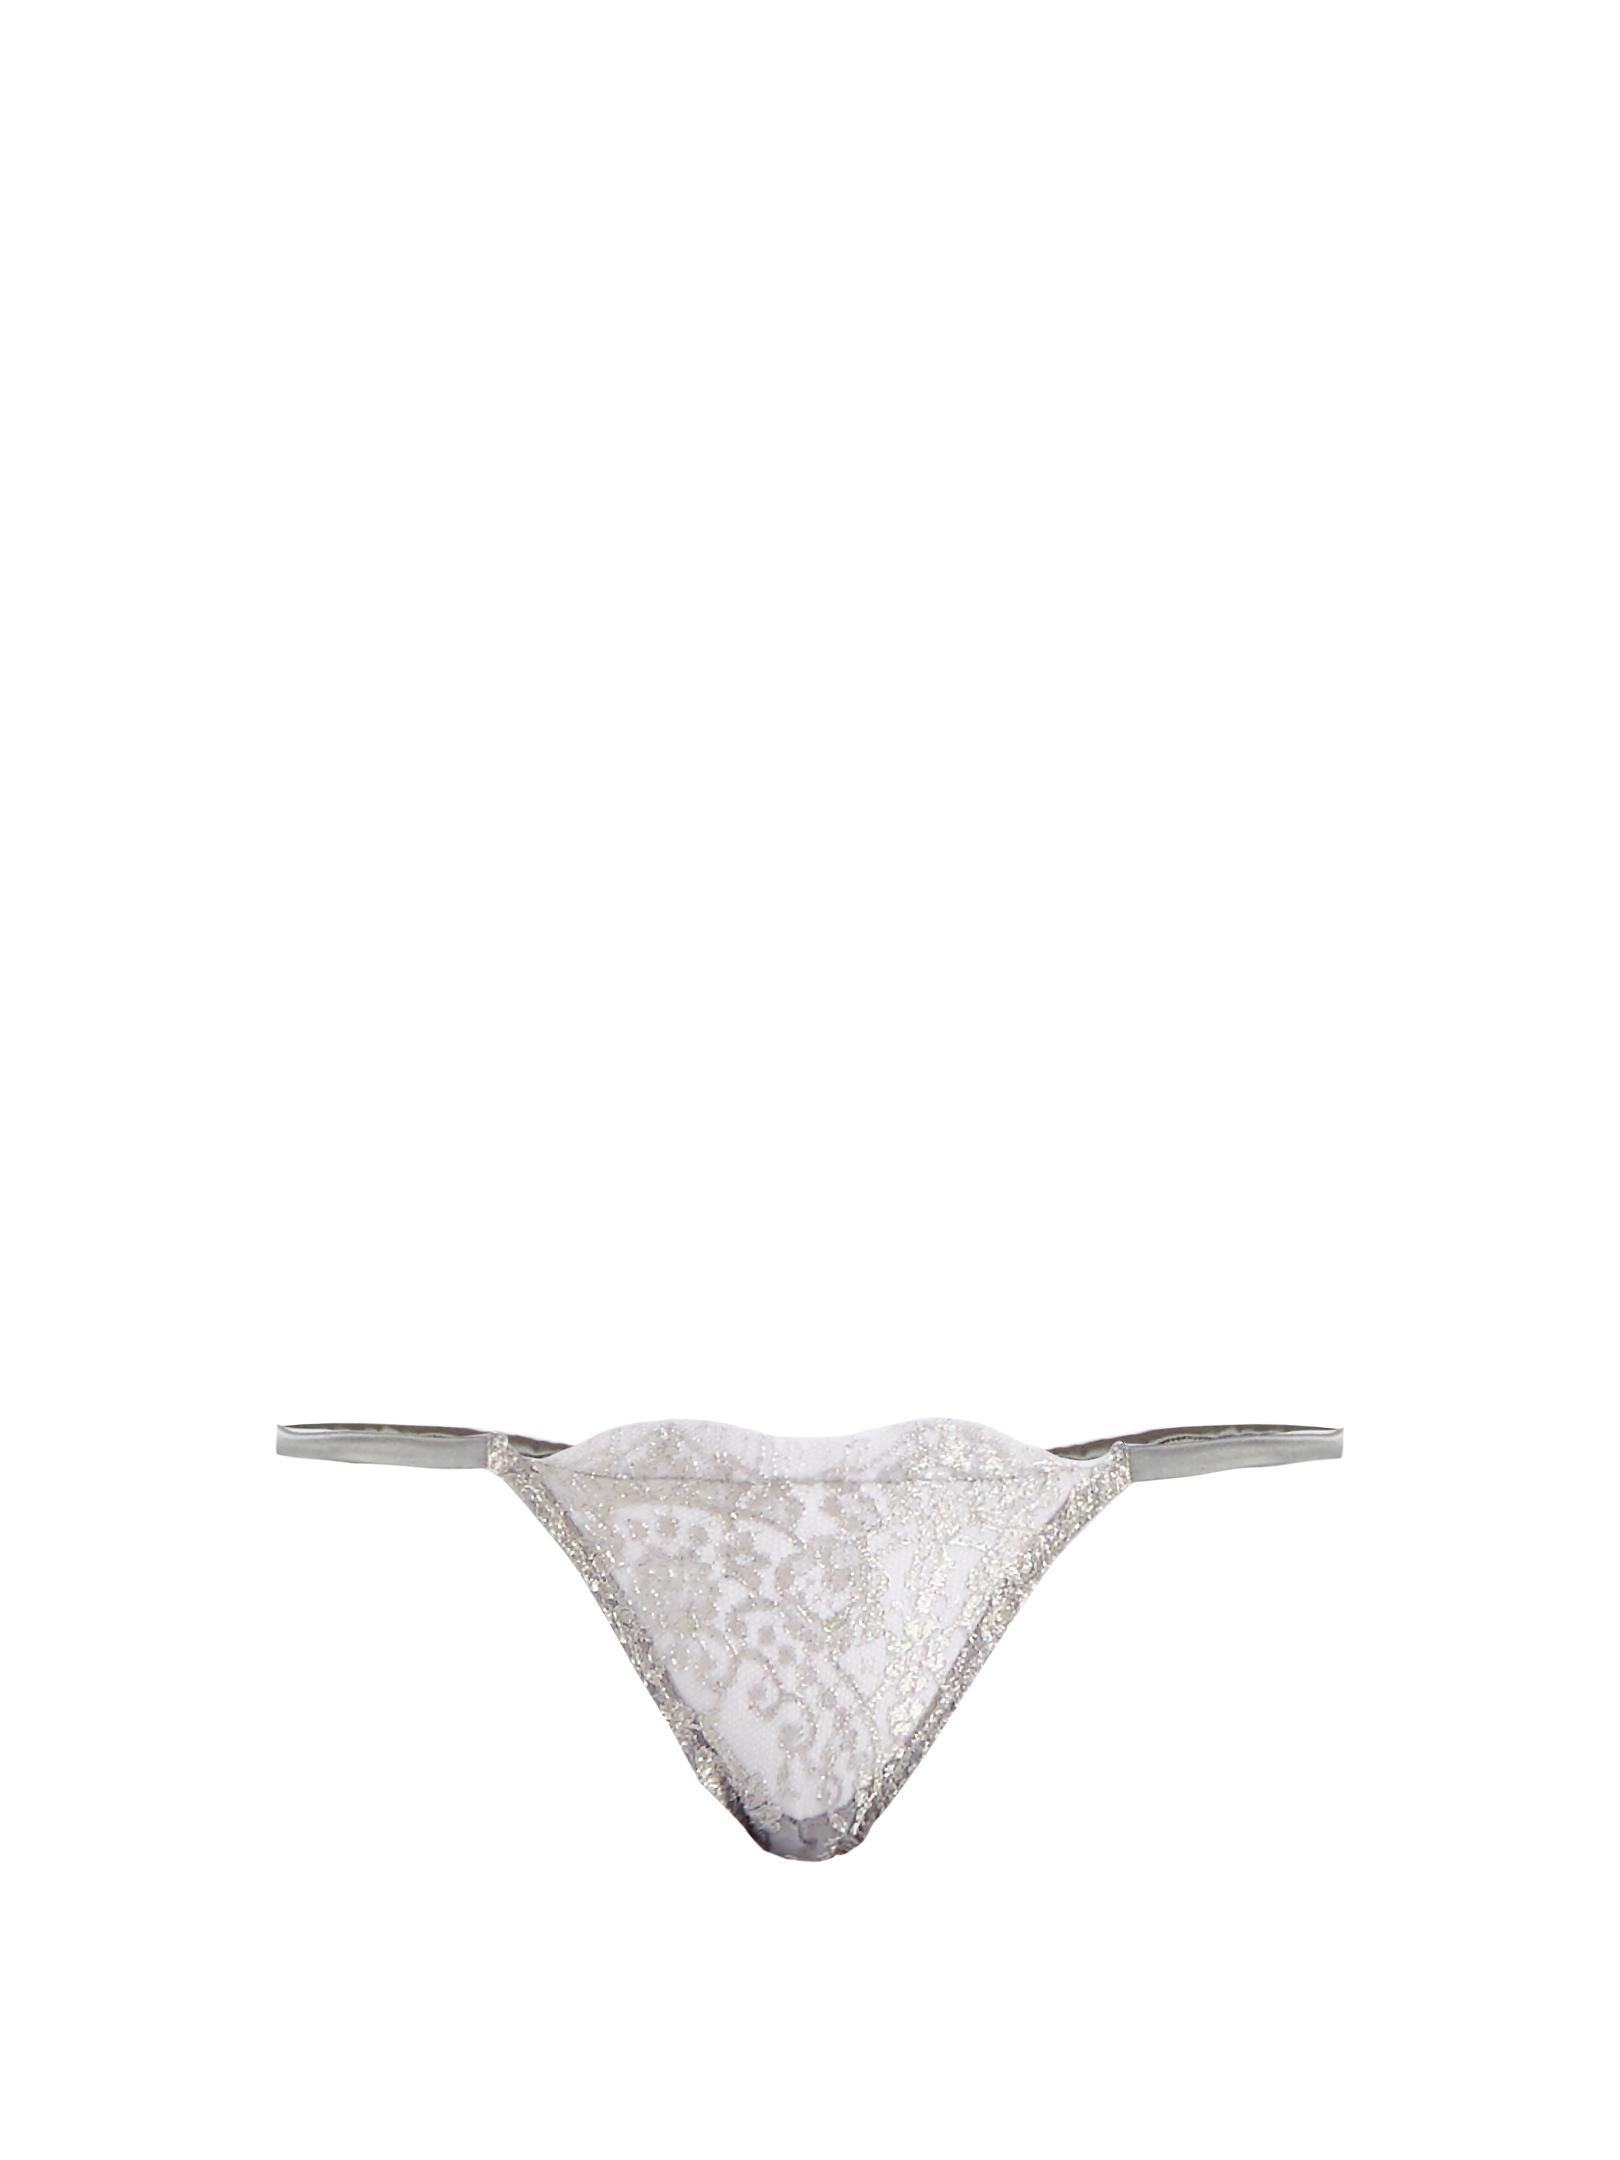 Sale For Sale Sale Classic Ardea embroidered-lace thong Coco de Mer Free Shipping Wiki Sale 2018 Wide Range Of 4ci2v